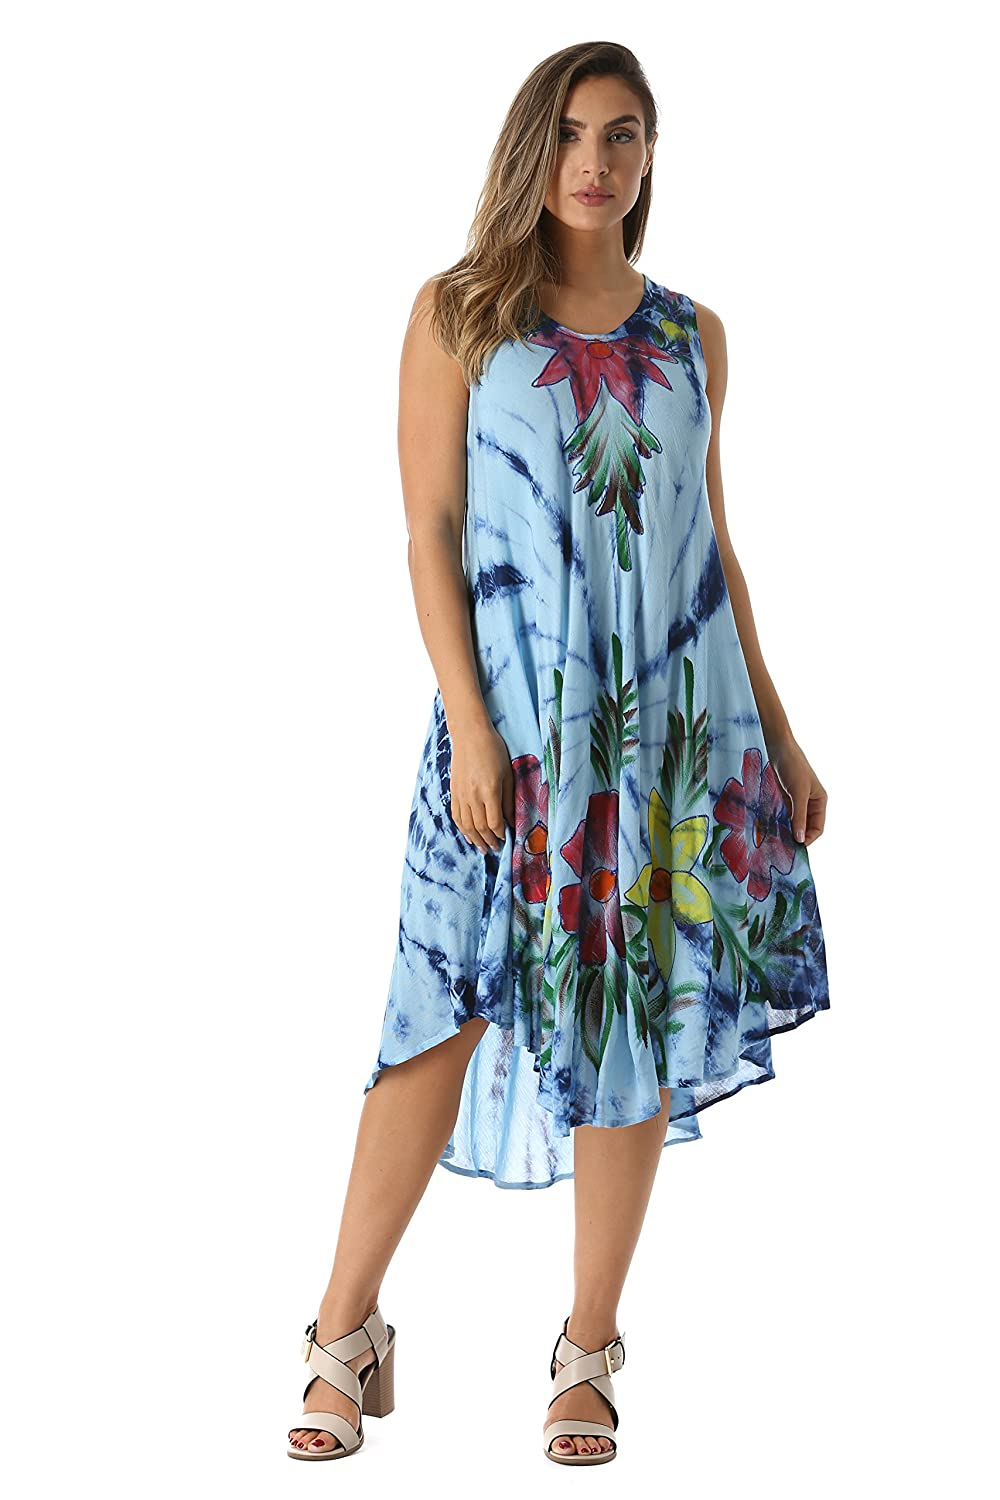 839c336f8c SWITCH IT UP: You'll love the versatility of these summer casual dresses.  You can dress them up with wedges for that afternoon lunch, pair them with  flip ...